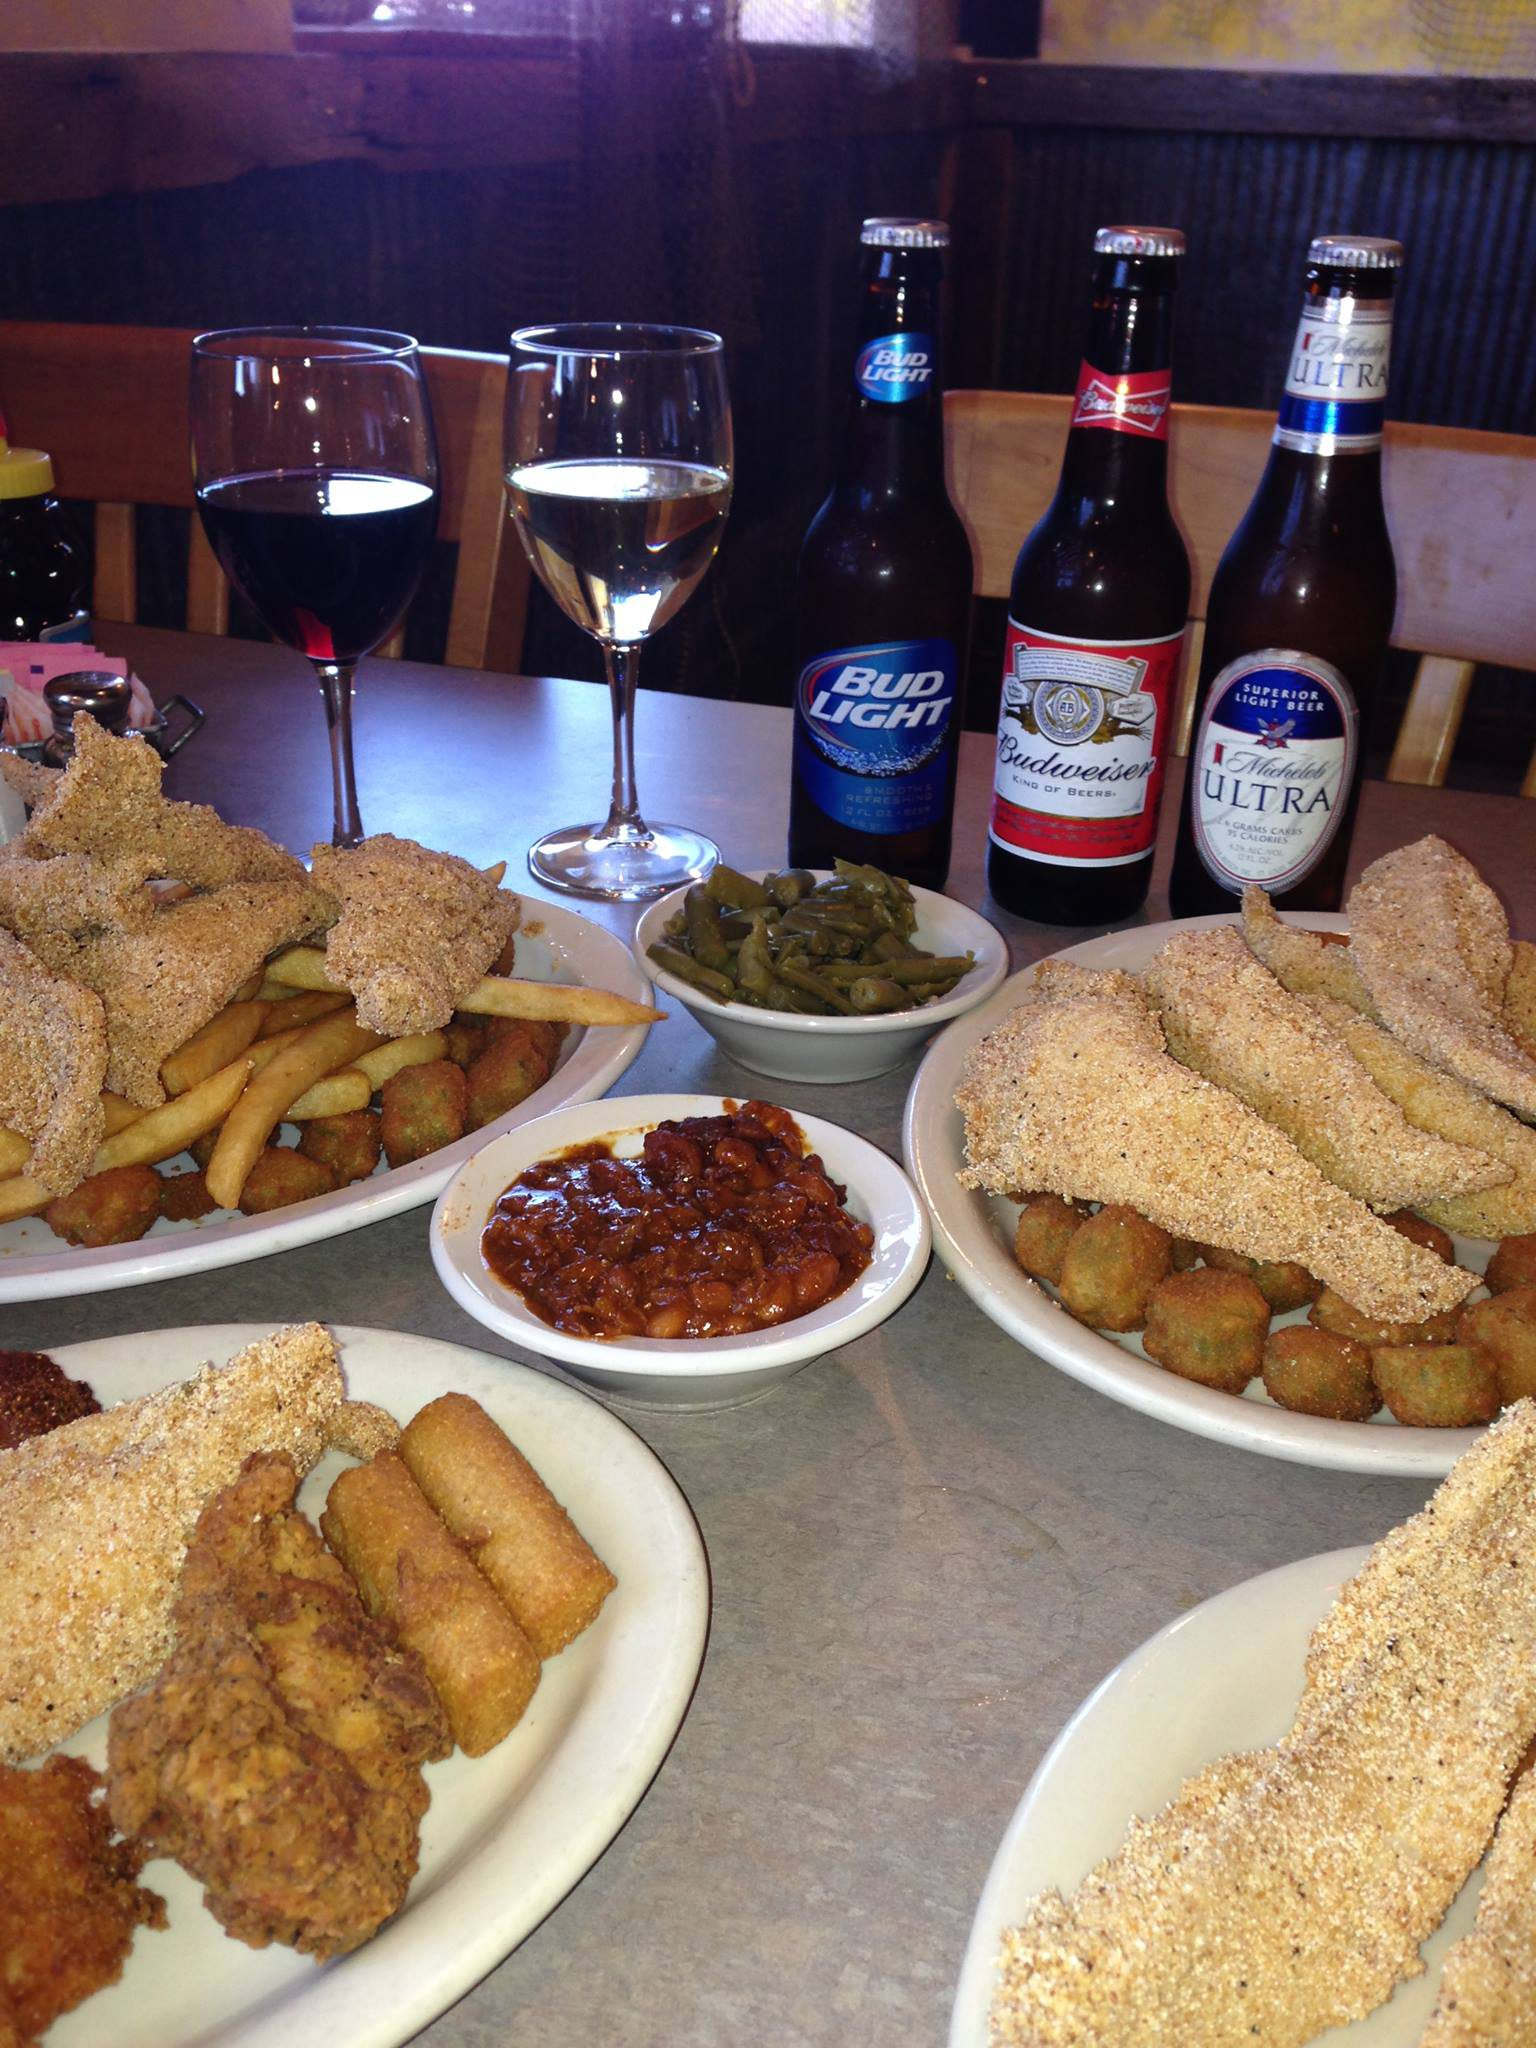 Enjoy some southern eats and pair it with one of the many sides like coleslaw, fried okra or corn on the cob.